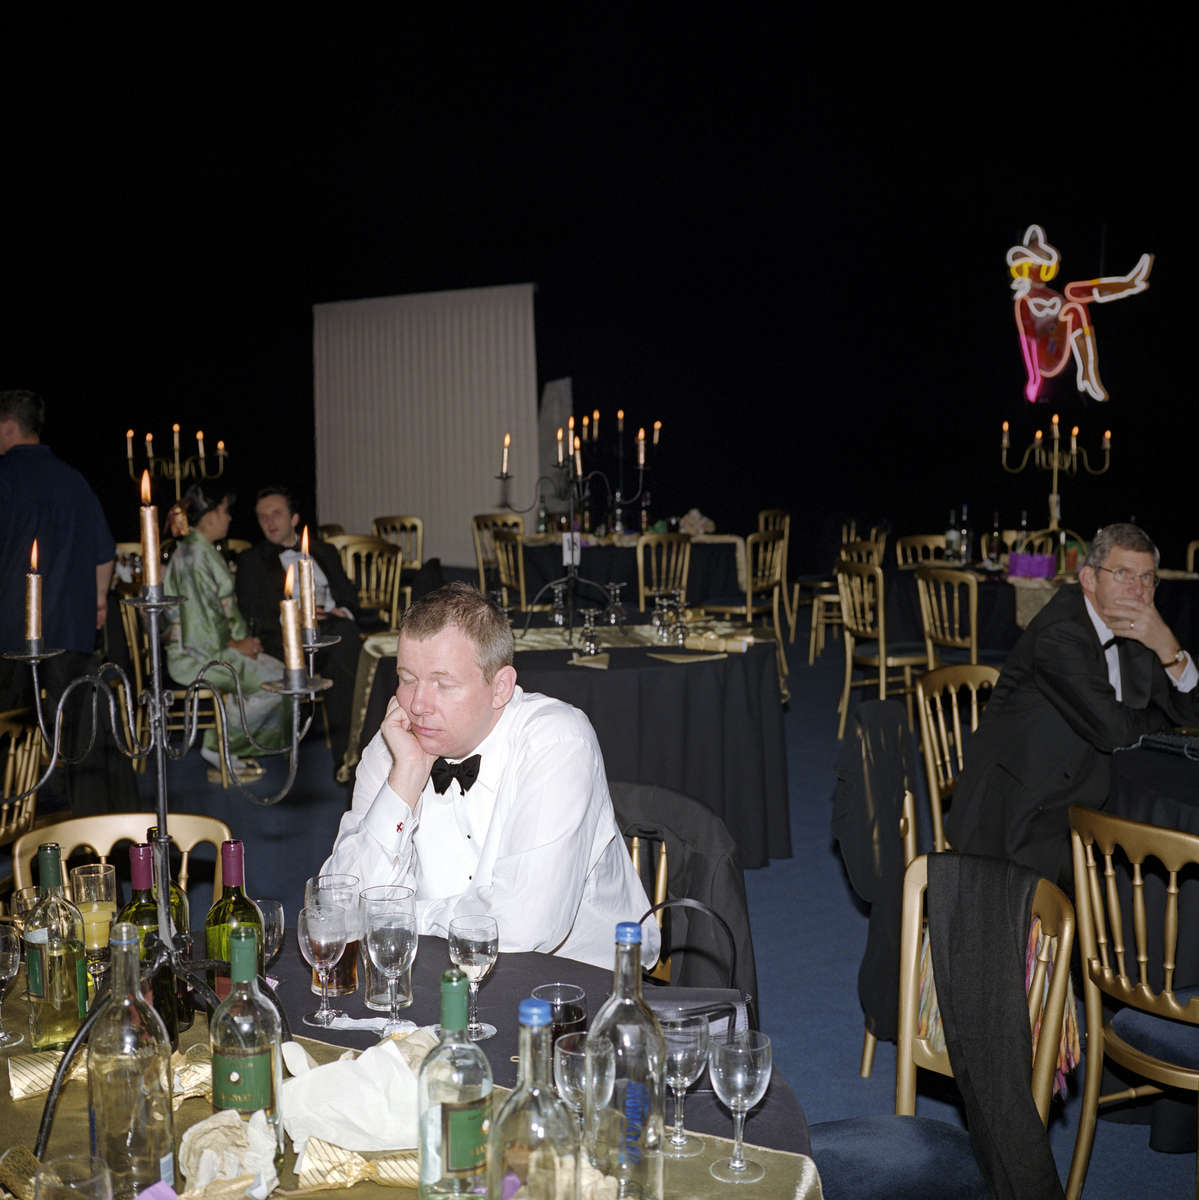 A guest at the Systems Union Las Vegas-themed party rests his eyes after dinner in a marquee in Farnborough. November 2002